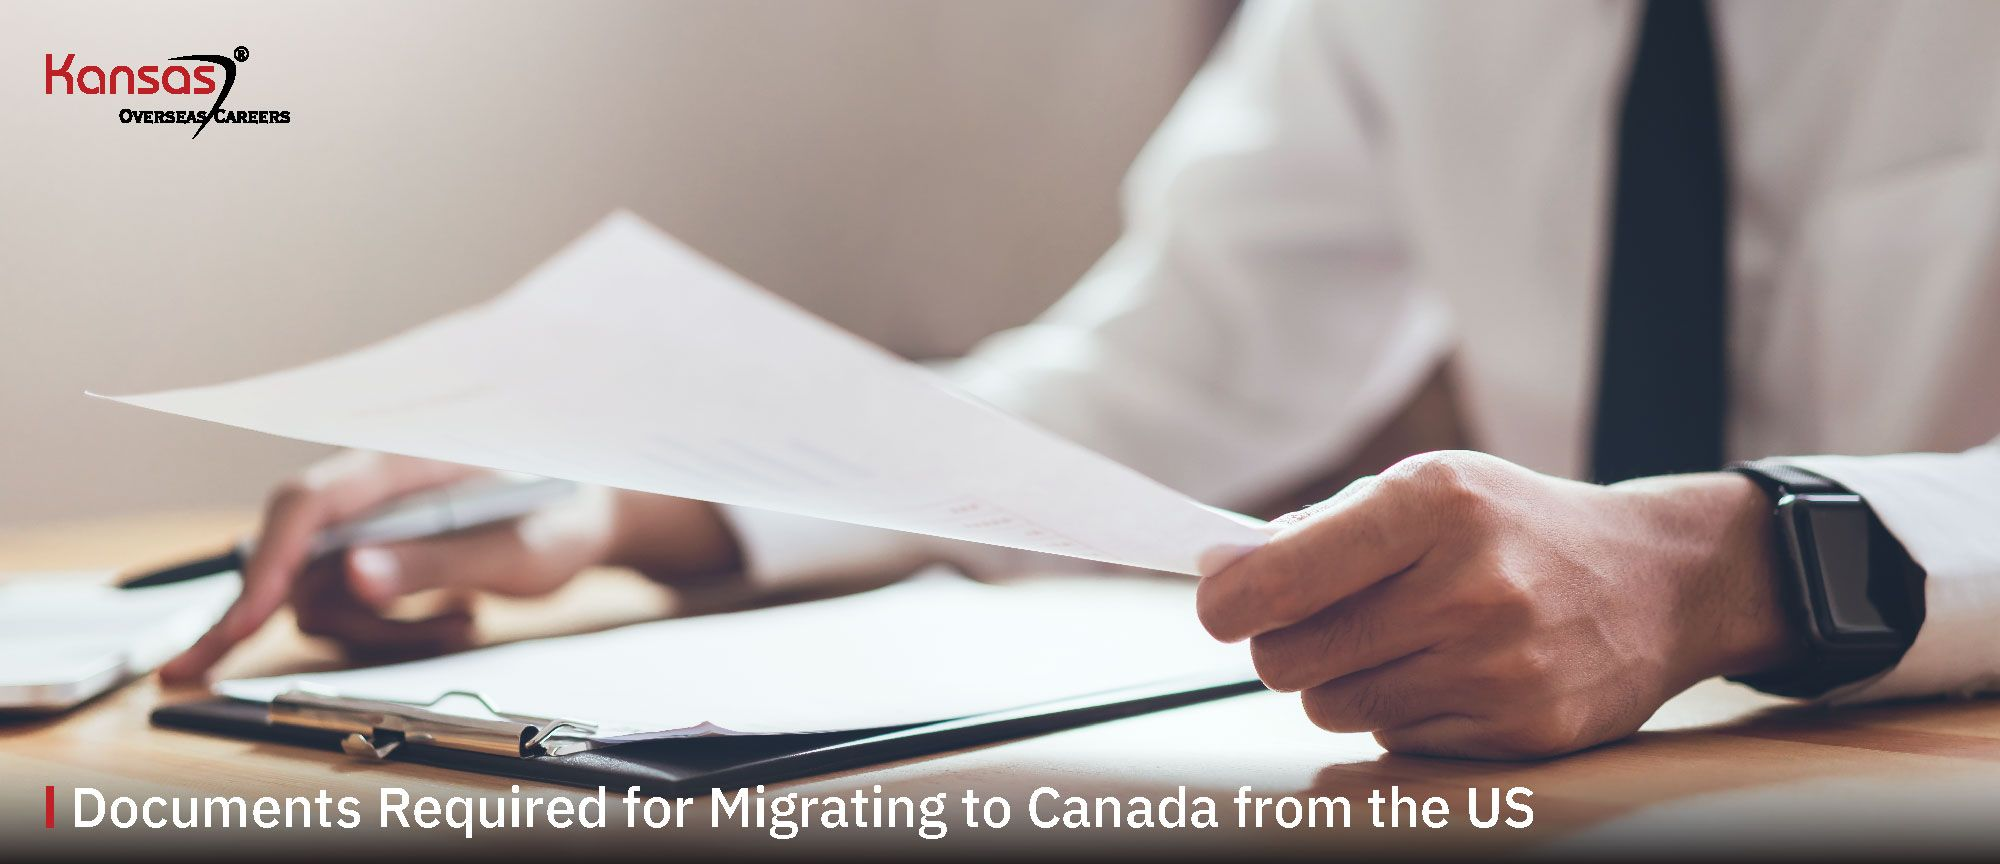 Documents-Required-for-Migrating-to-Canada-from-the-US